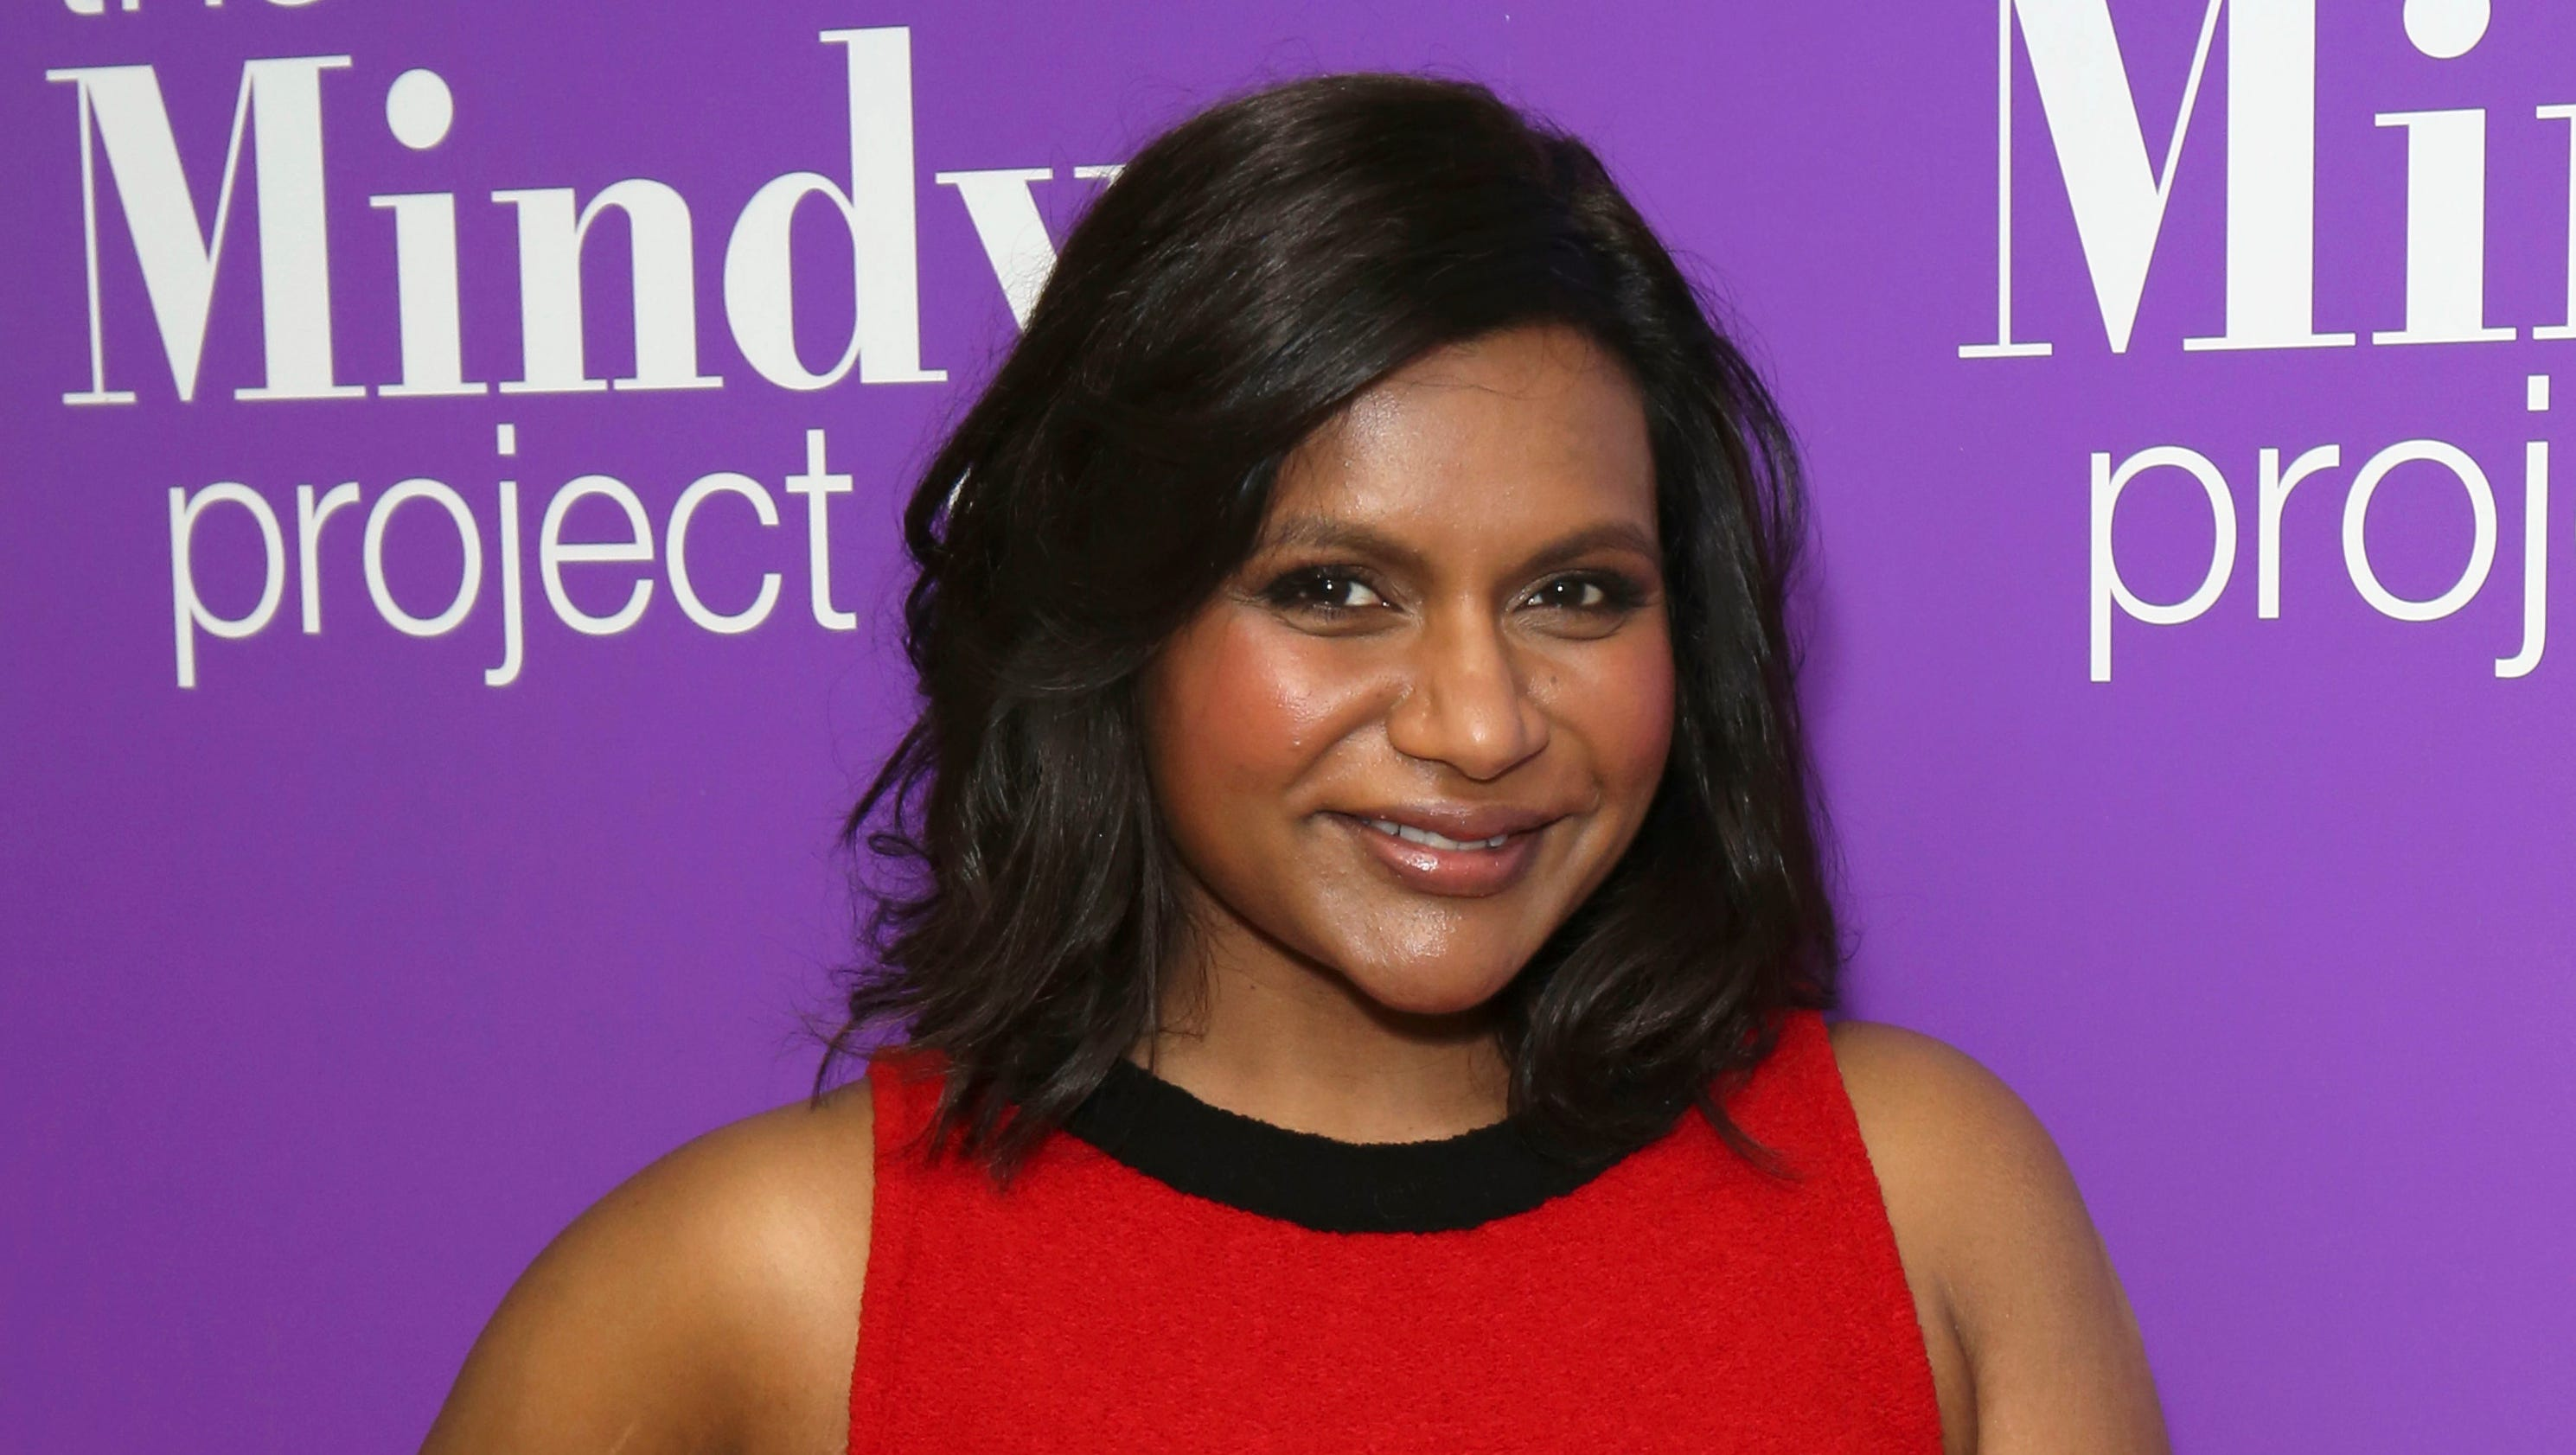 Michelle Collins Fakes Minimalist mindy's 'project' calls it a day with hulu series finale